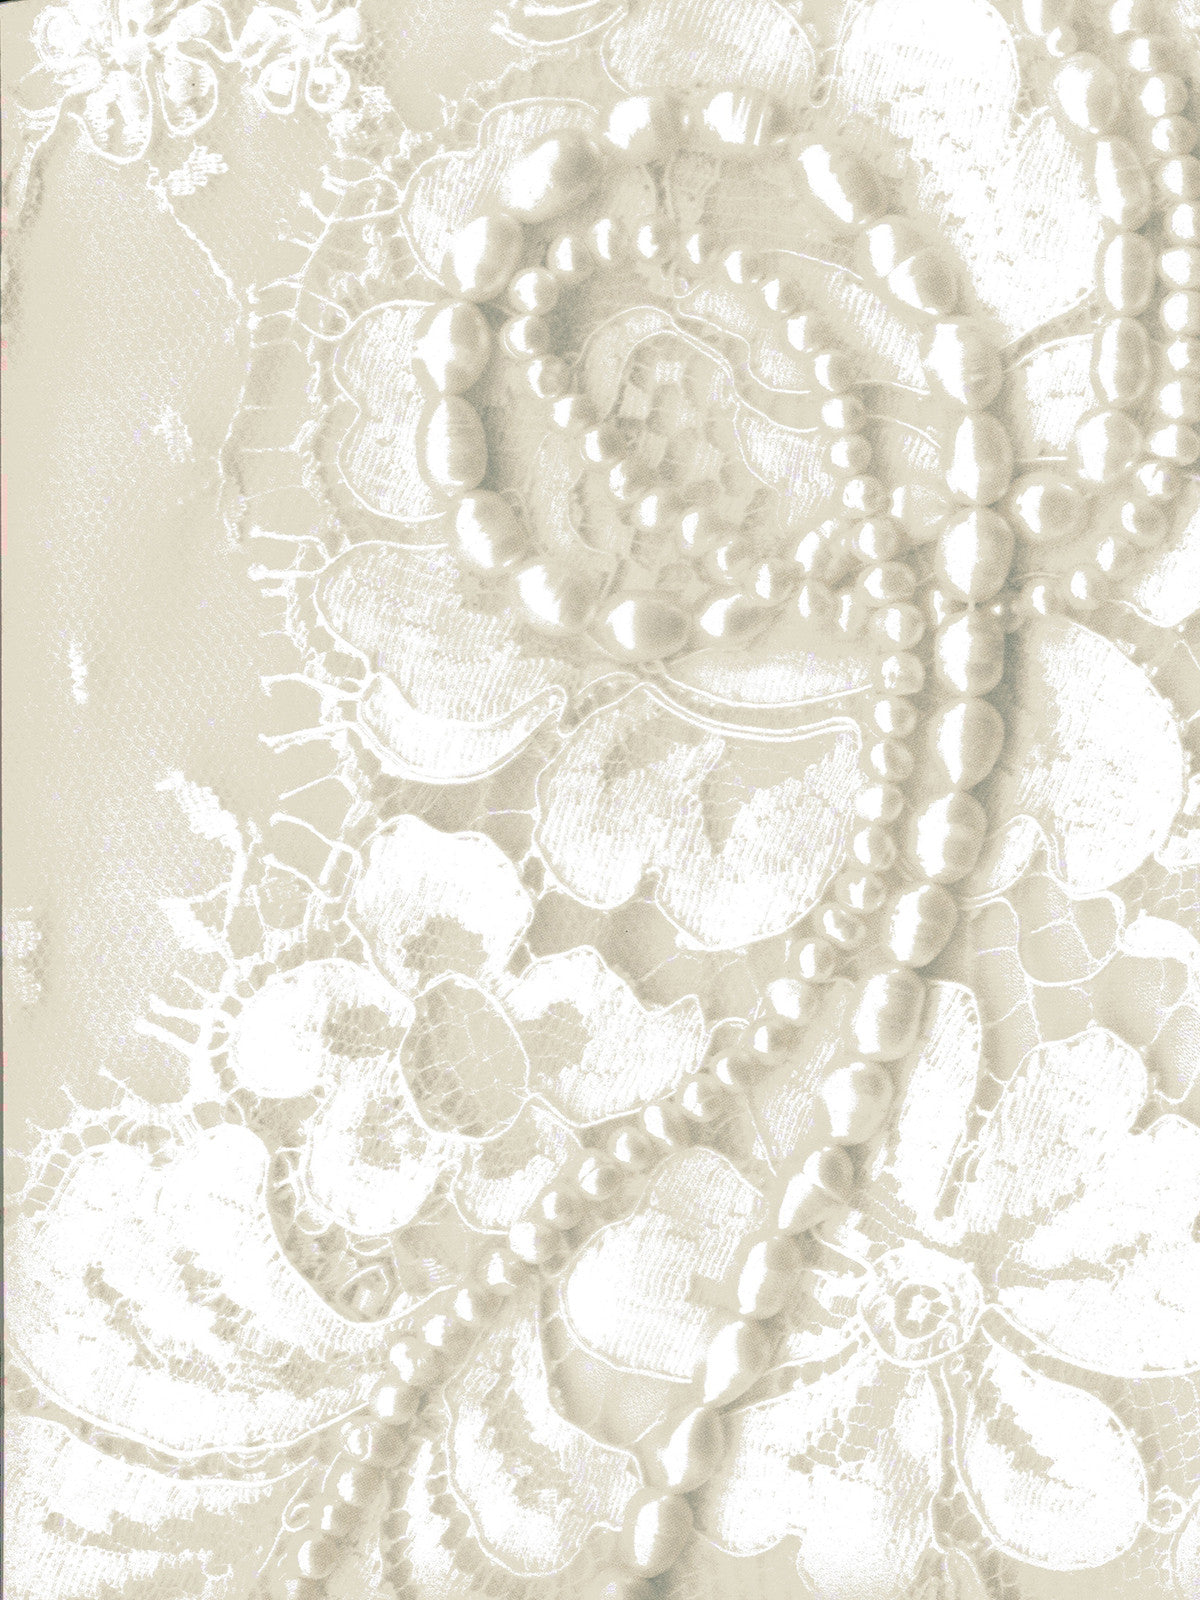 Pearls and Lace Photography Background / 7239 - DropPlace